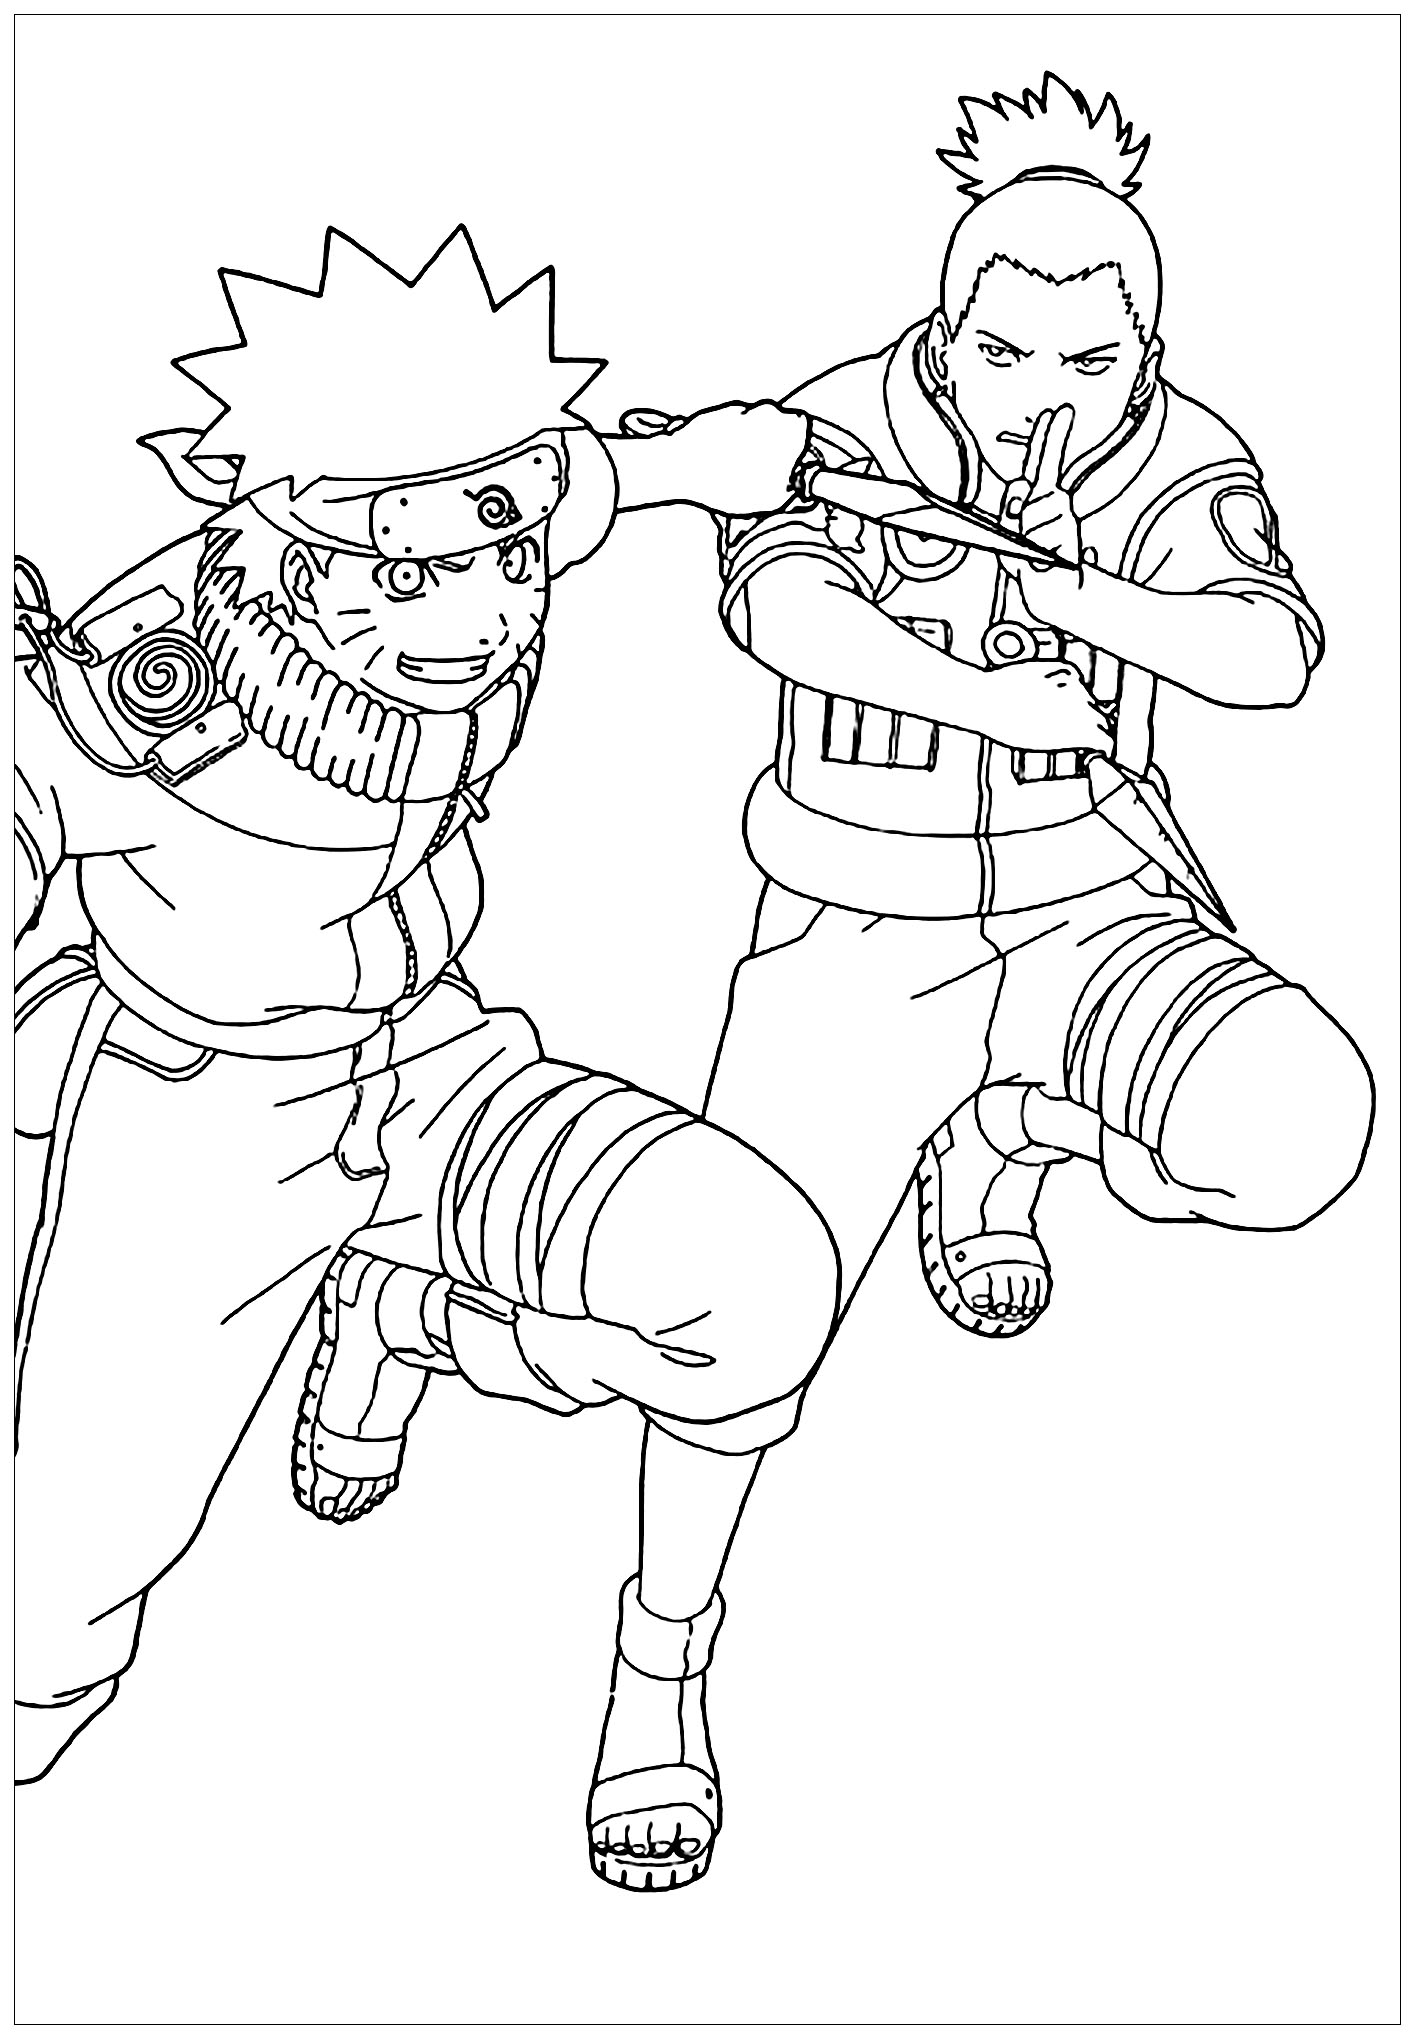 naruto coloring sheets coloring town naruto coloring sheets